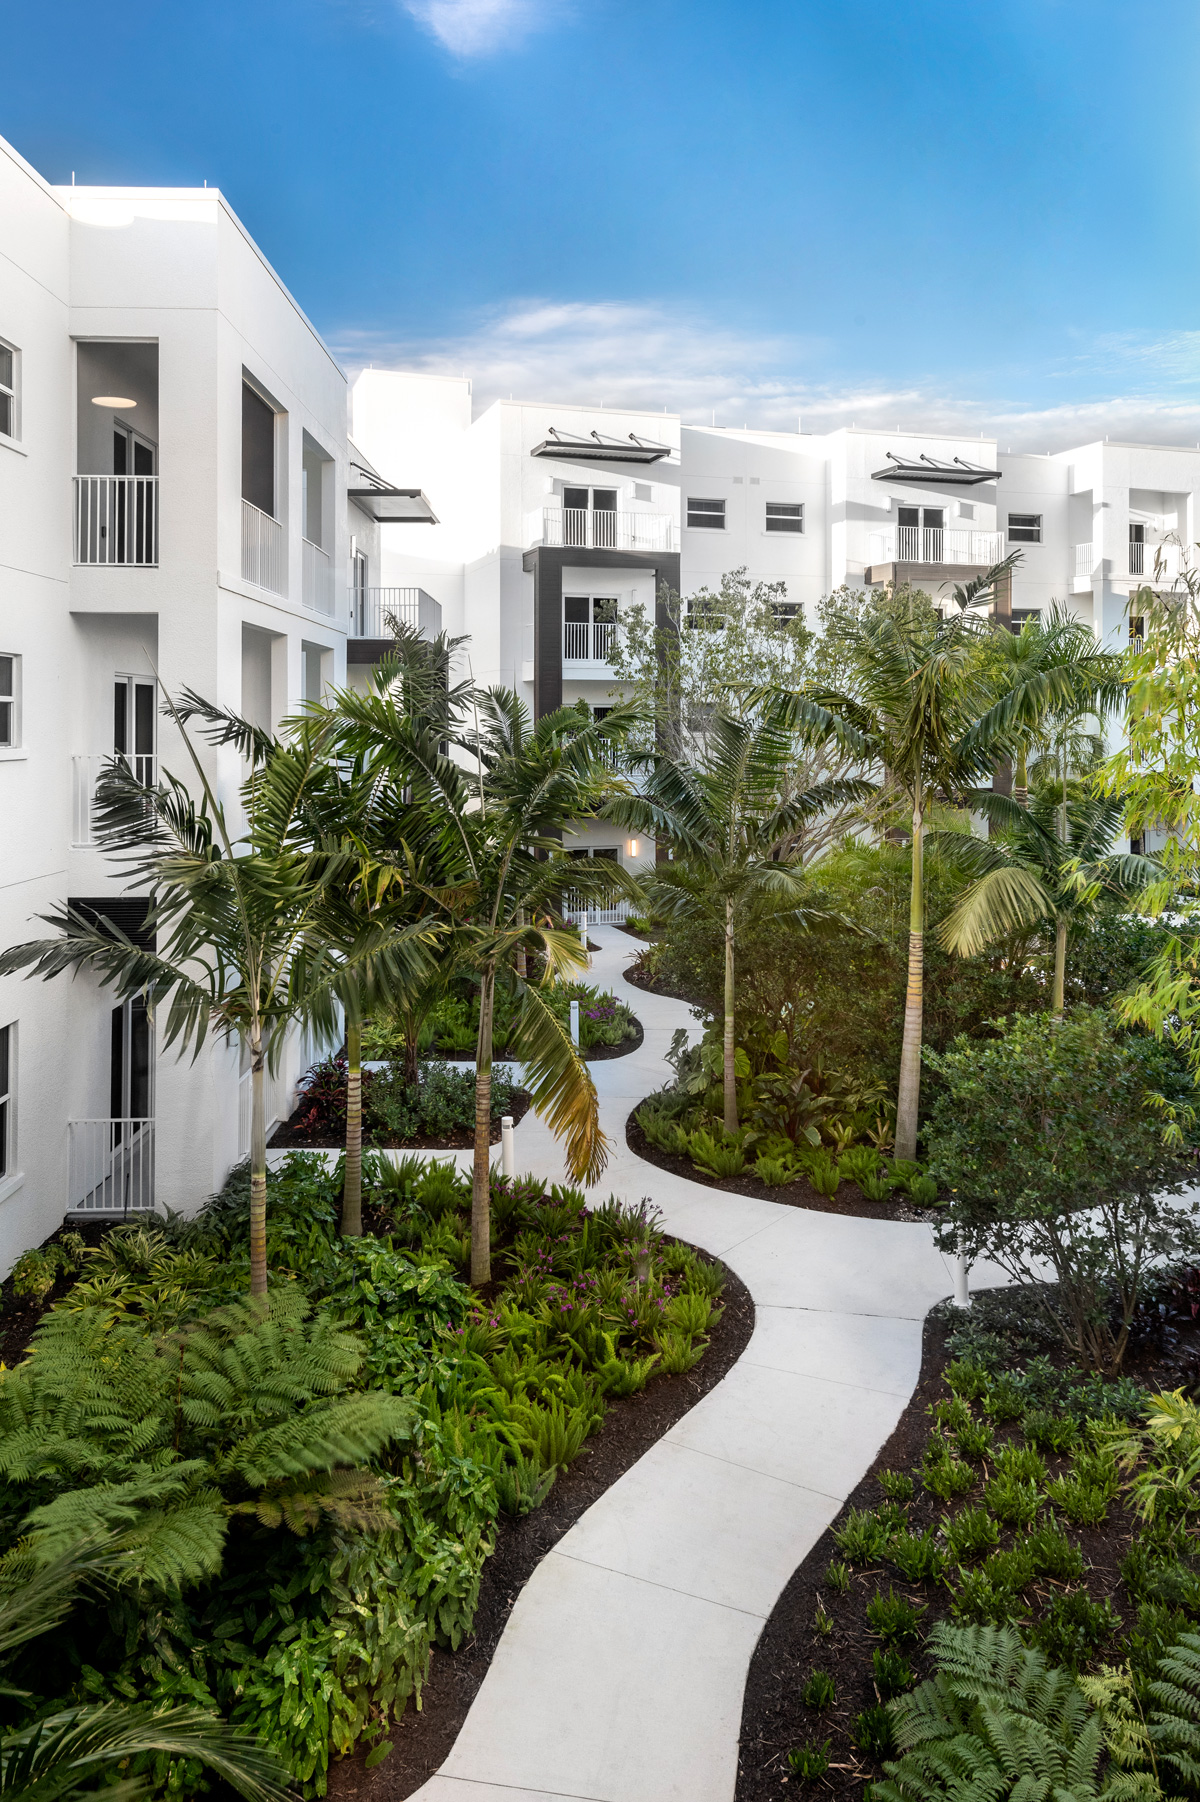 One the enjoyable garden pathways which wind through the Waters Edge Independent Living courtyard.